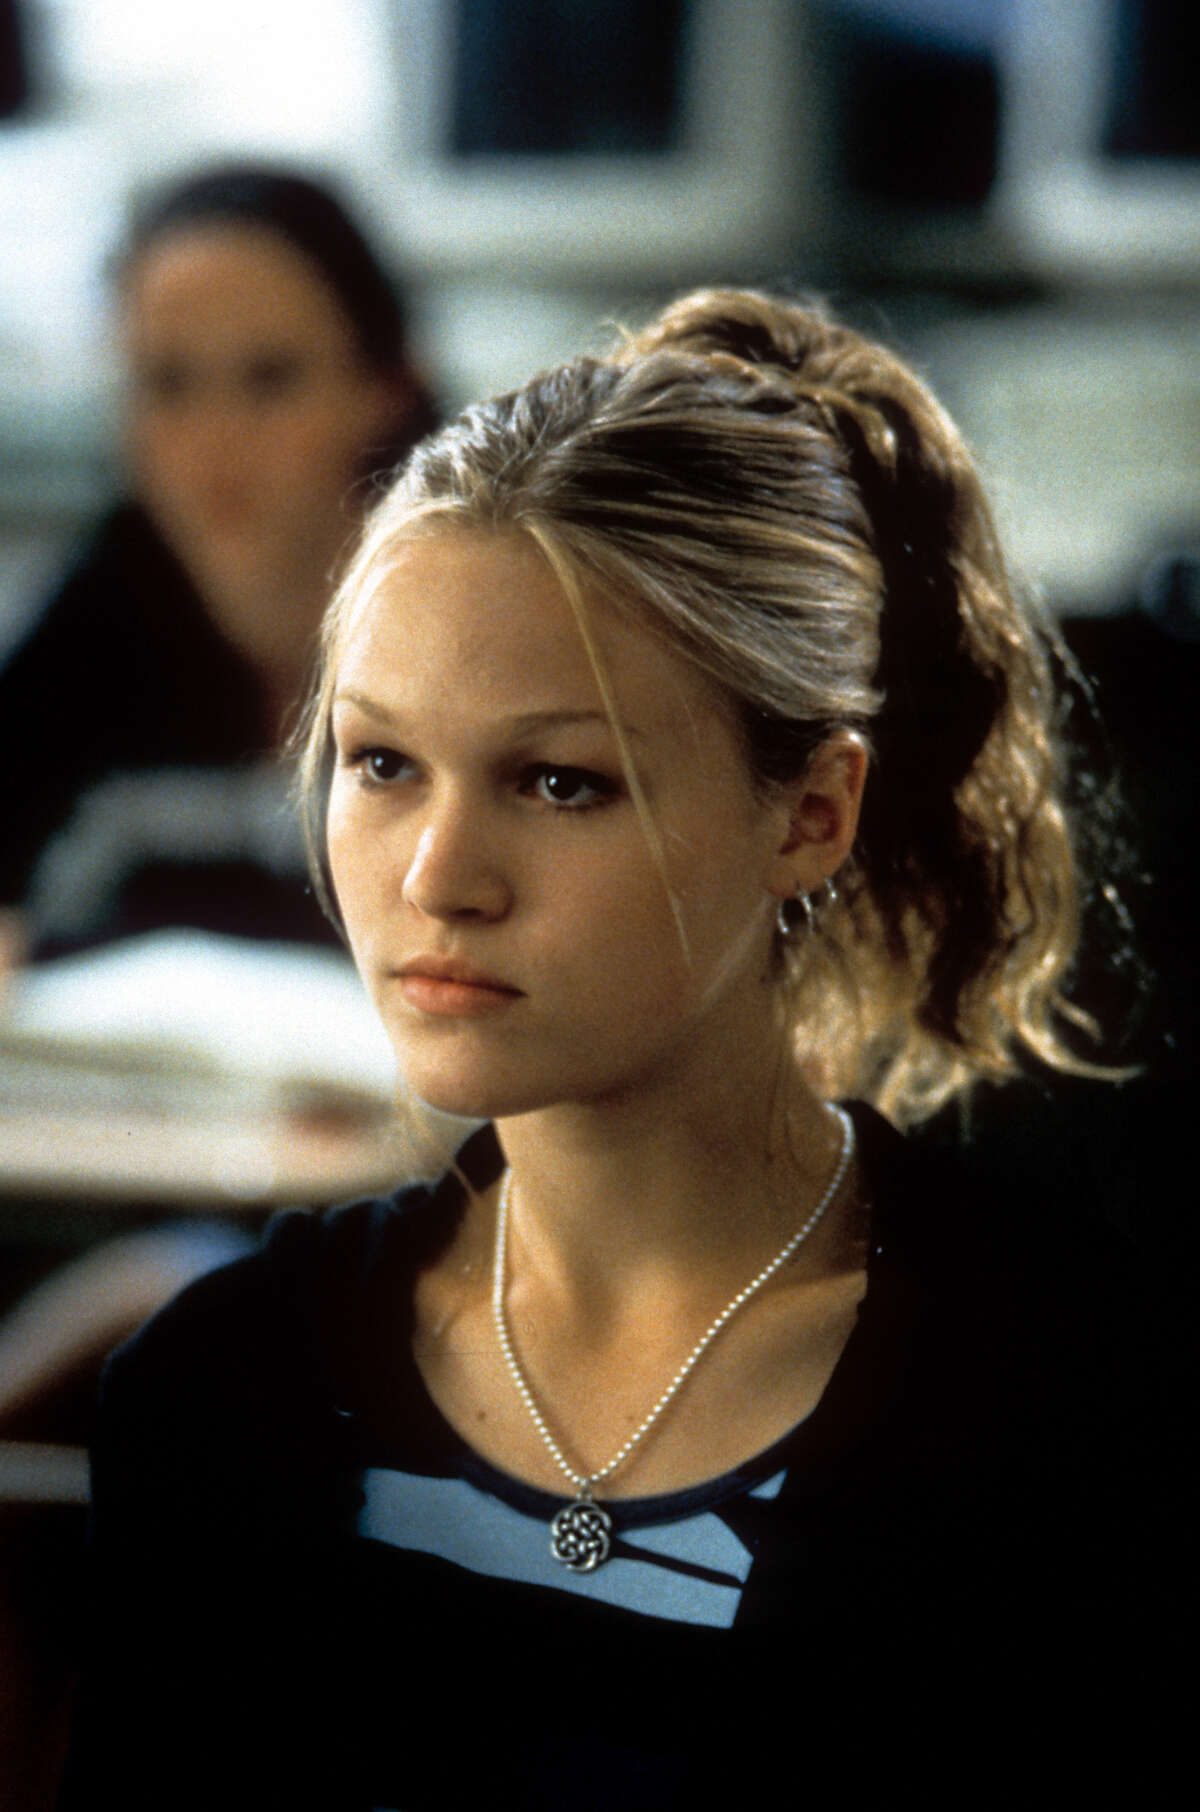 """Julia Stiles played the older sister, Kat Stratford, with an antisocial, shrewd demeanor. But as the film reveals, it may have all been a mask. The New York-born actress had been in both film and TV before the movie, playing a leading role in """"Wicked"""". But """"10 Things I Hate About You"""" paved the way for her streak as an early 2000s teen-movie star."""